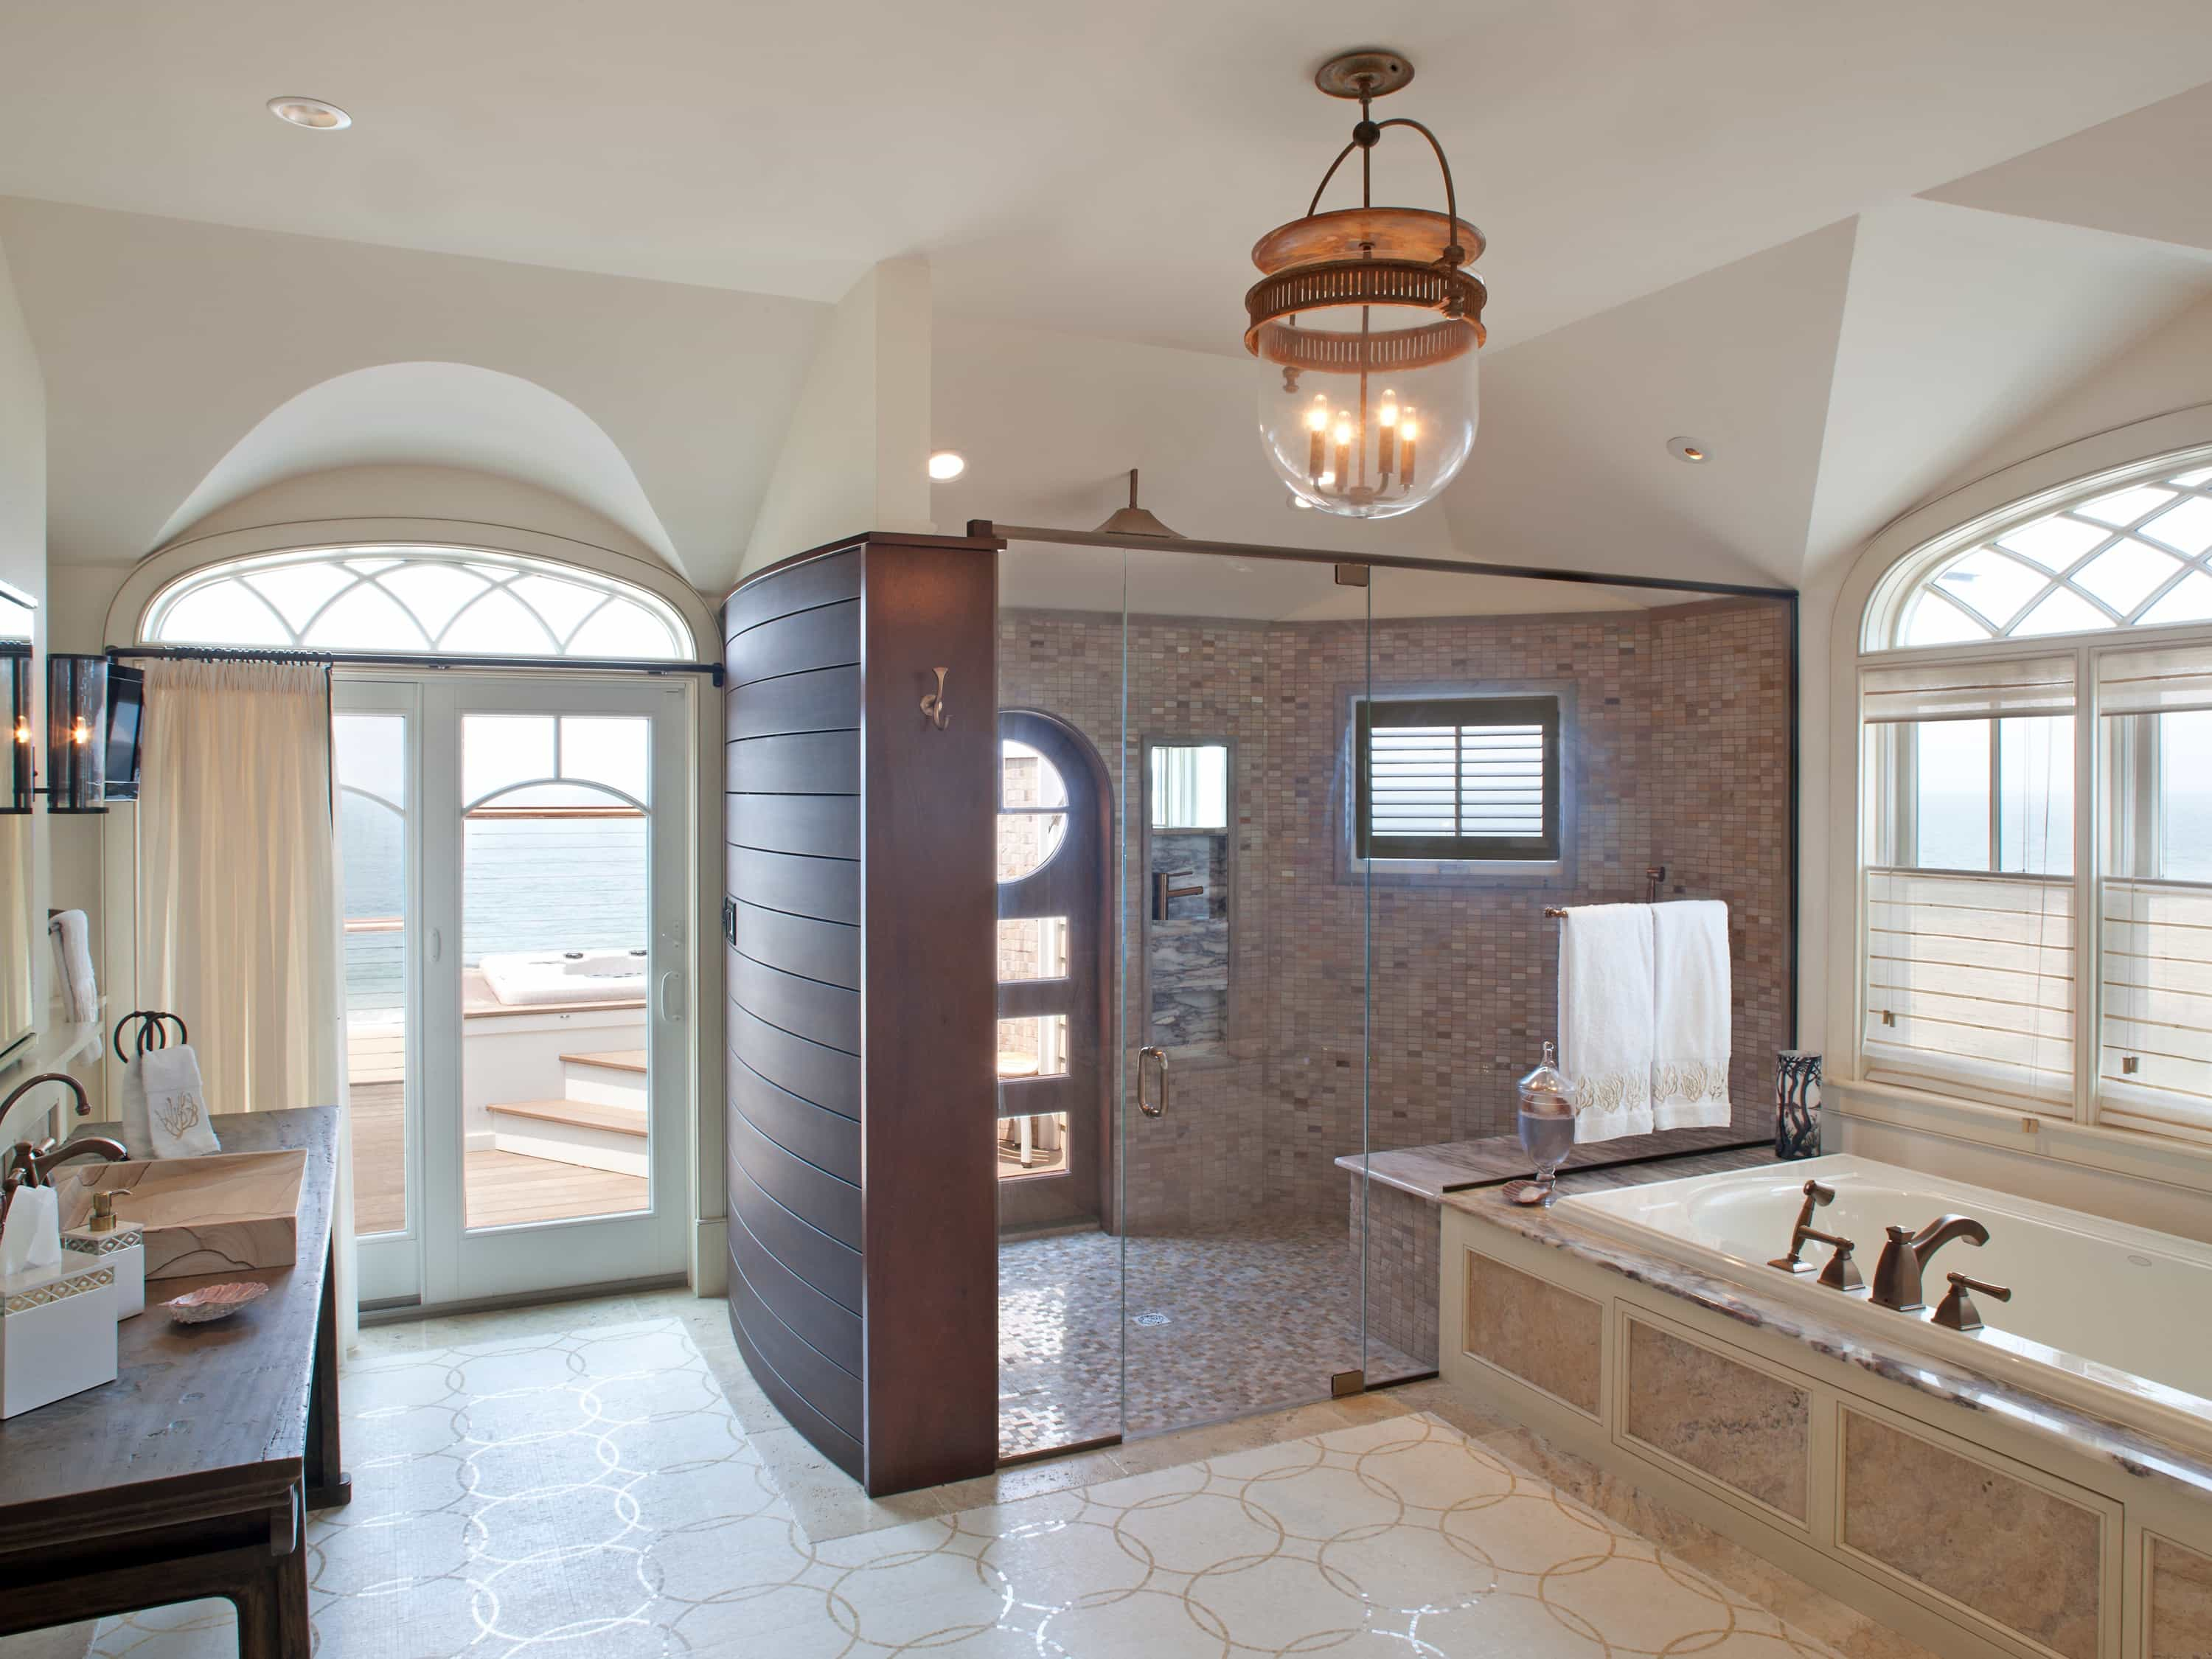 French Bathroom Interior Design Style (Image 16 of 29)